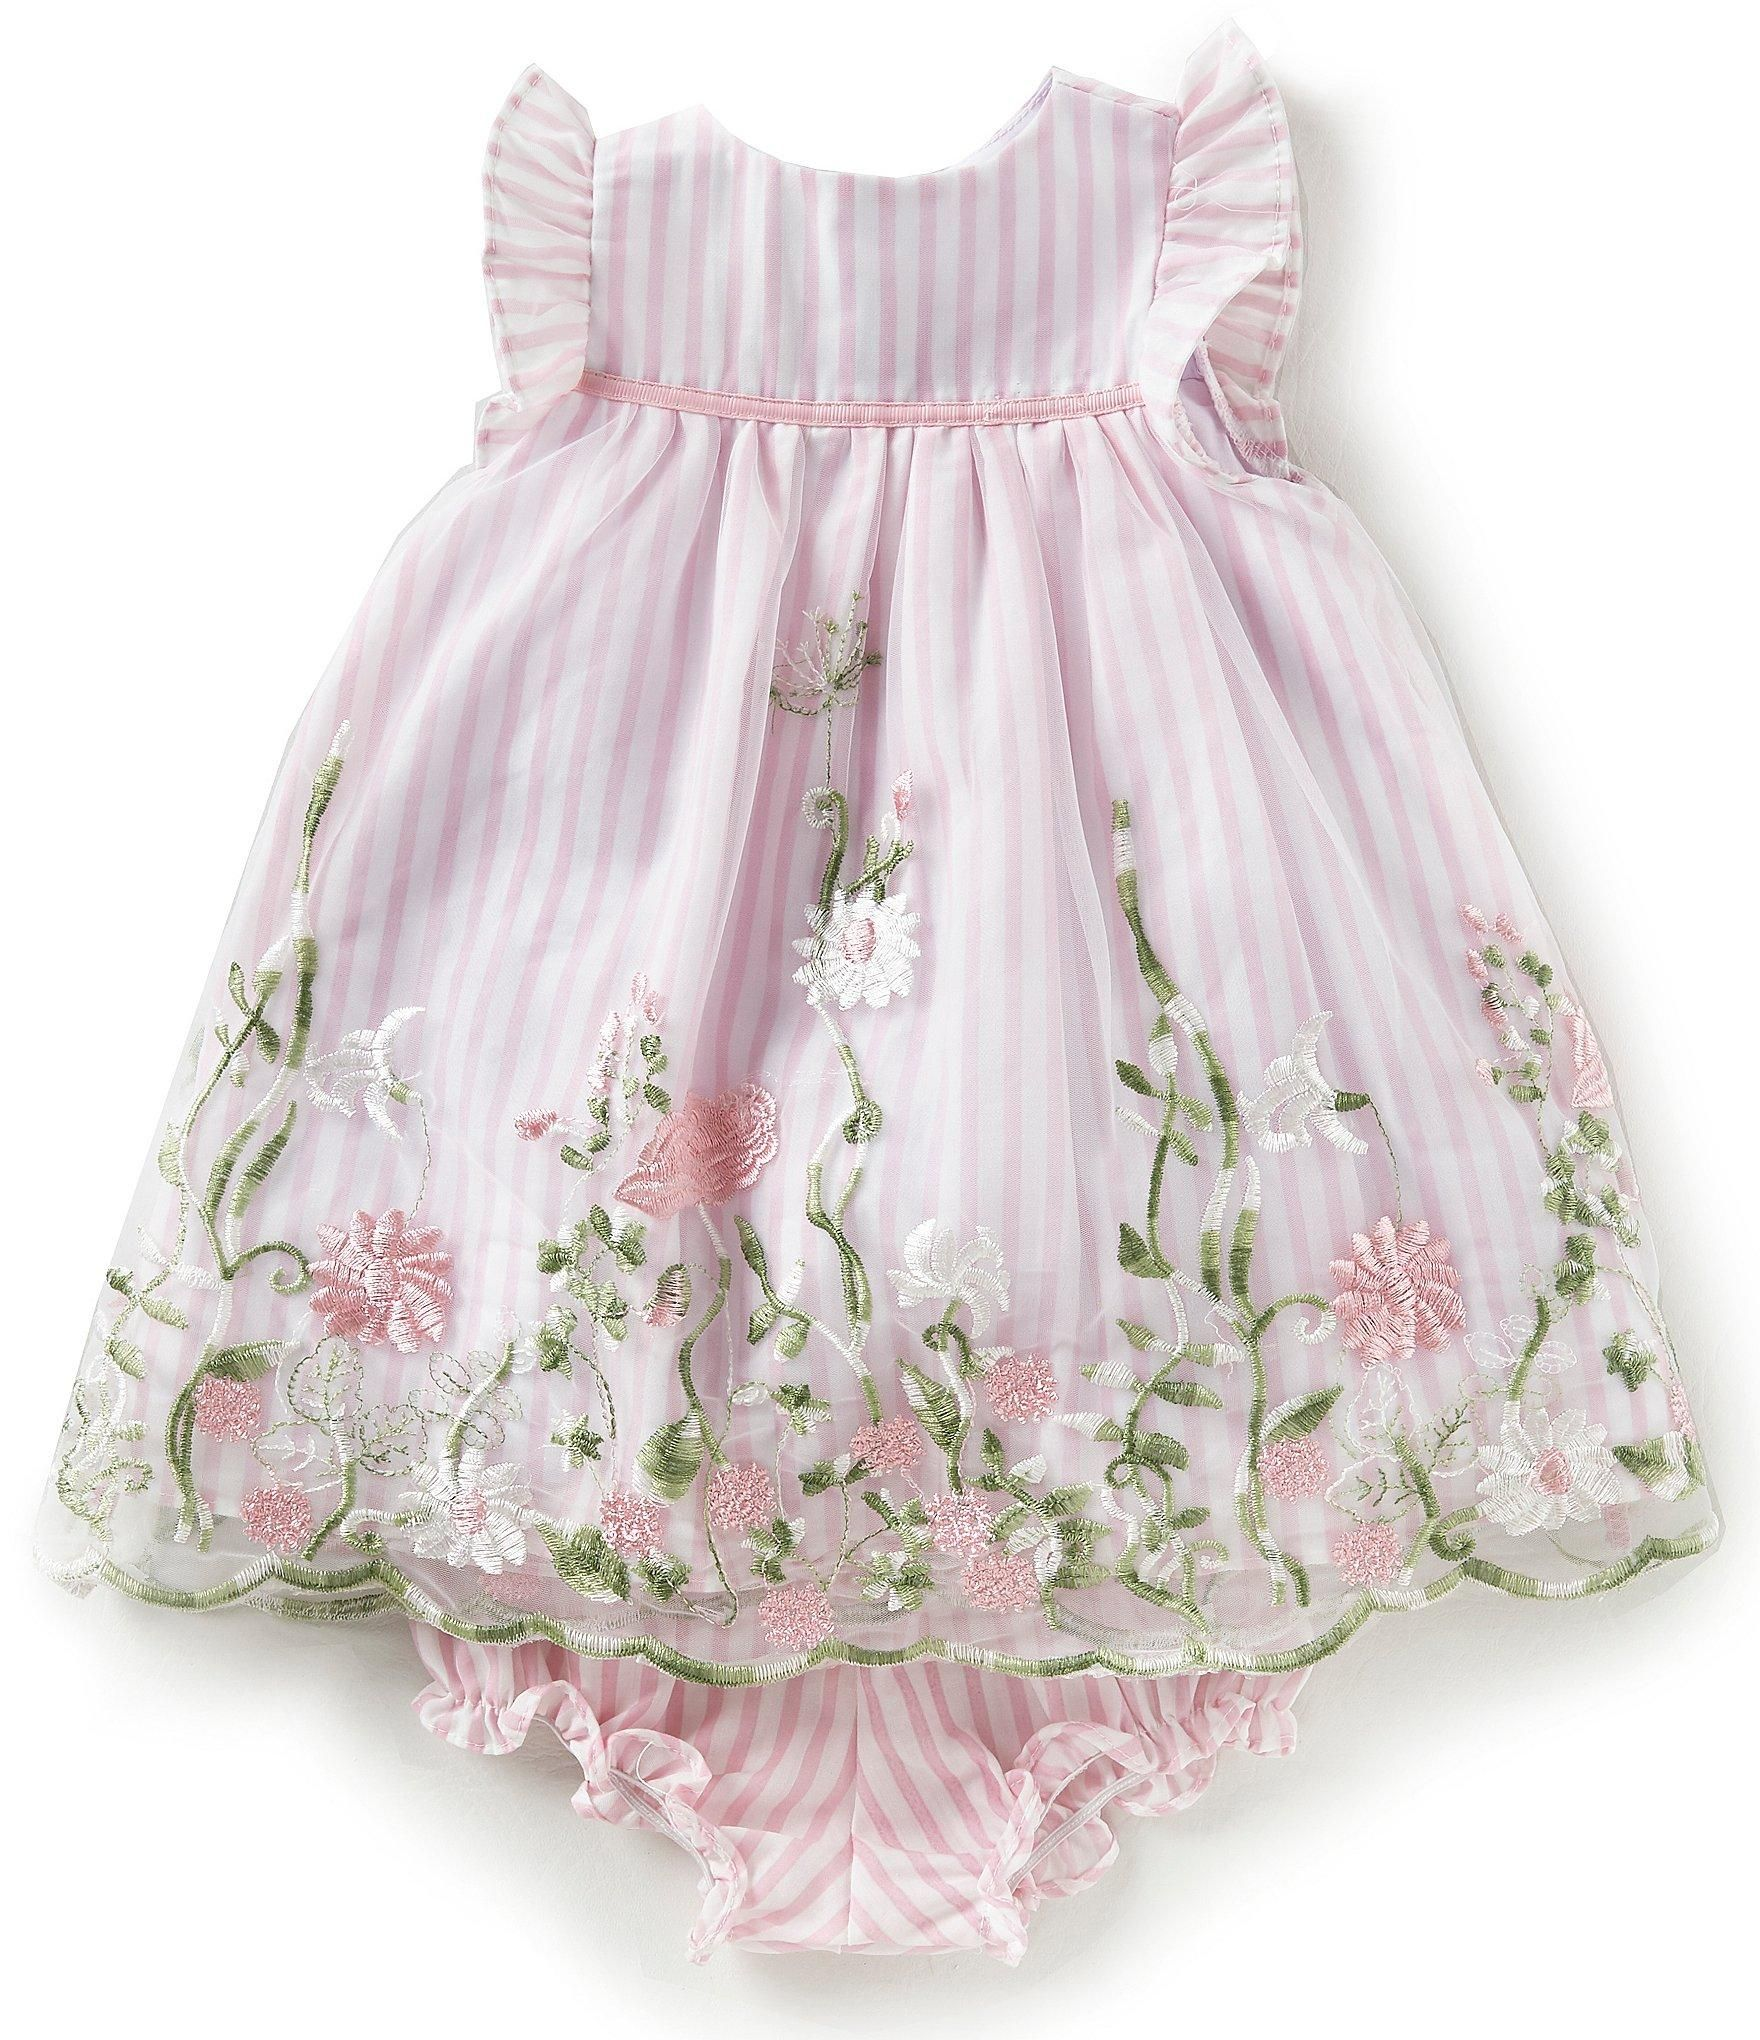 ebd3226baea ... And Special Occasions - Adorable Children s Clothing   Accessories.  Fabric Baby Girl Dresses